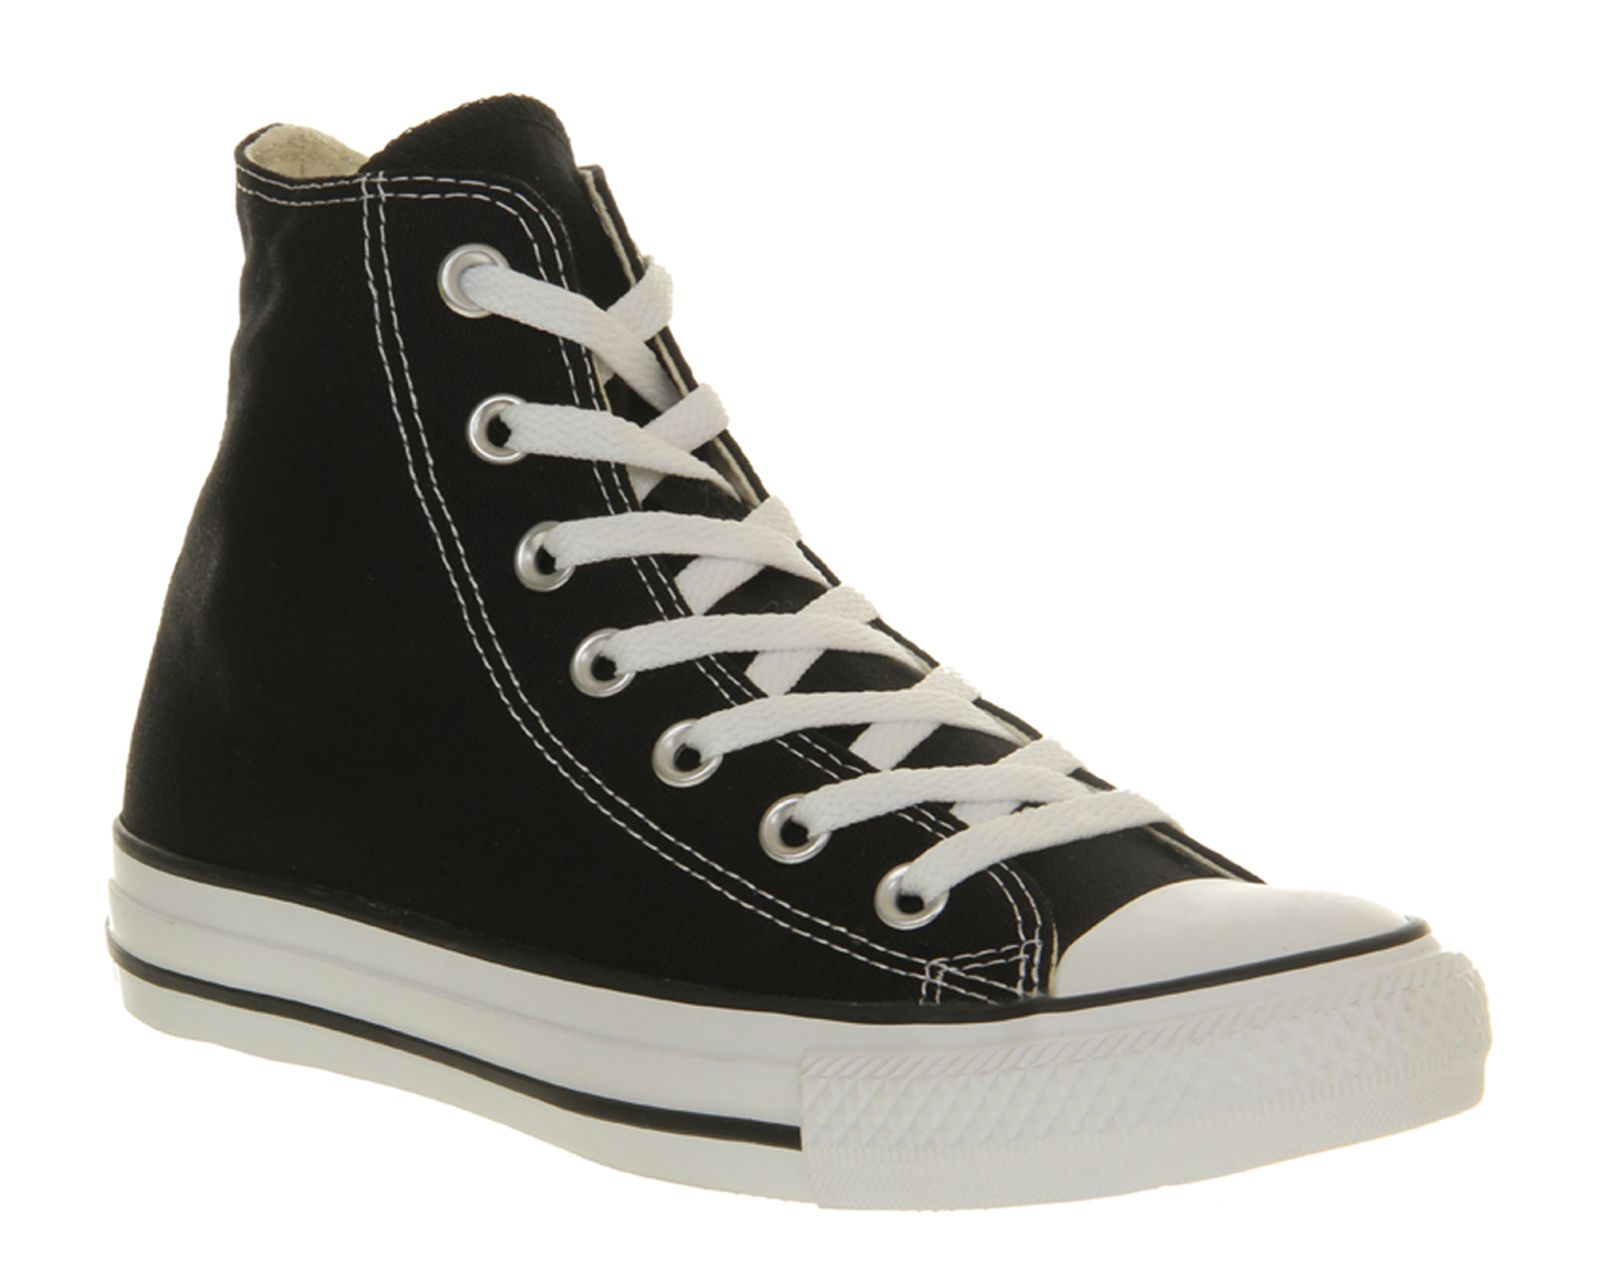 22730d123283 all star Black converse high tops. SIZE 4. exactly the same as your black